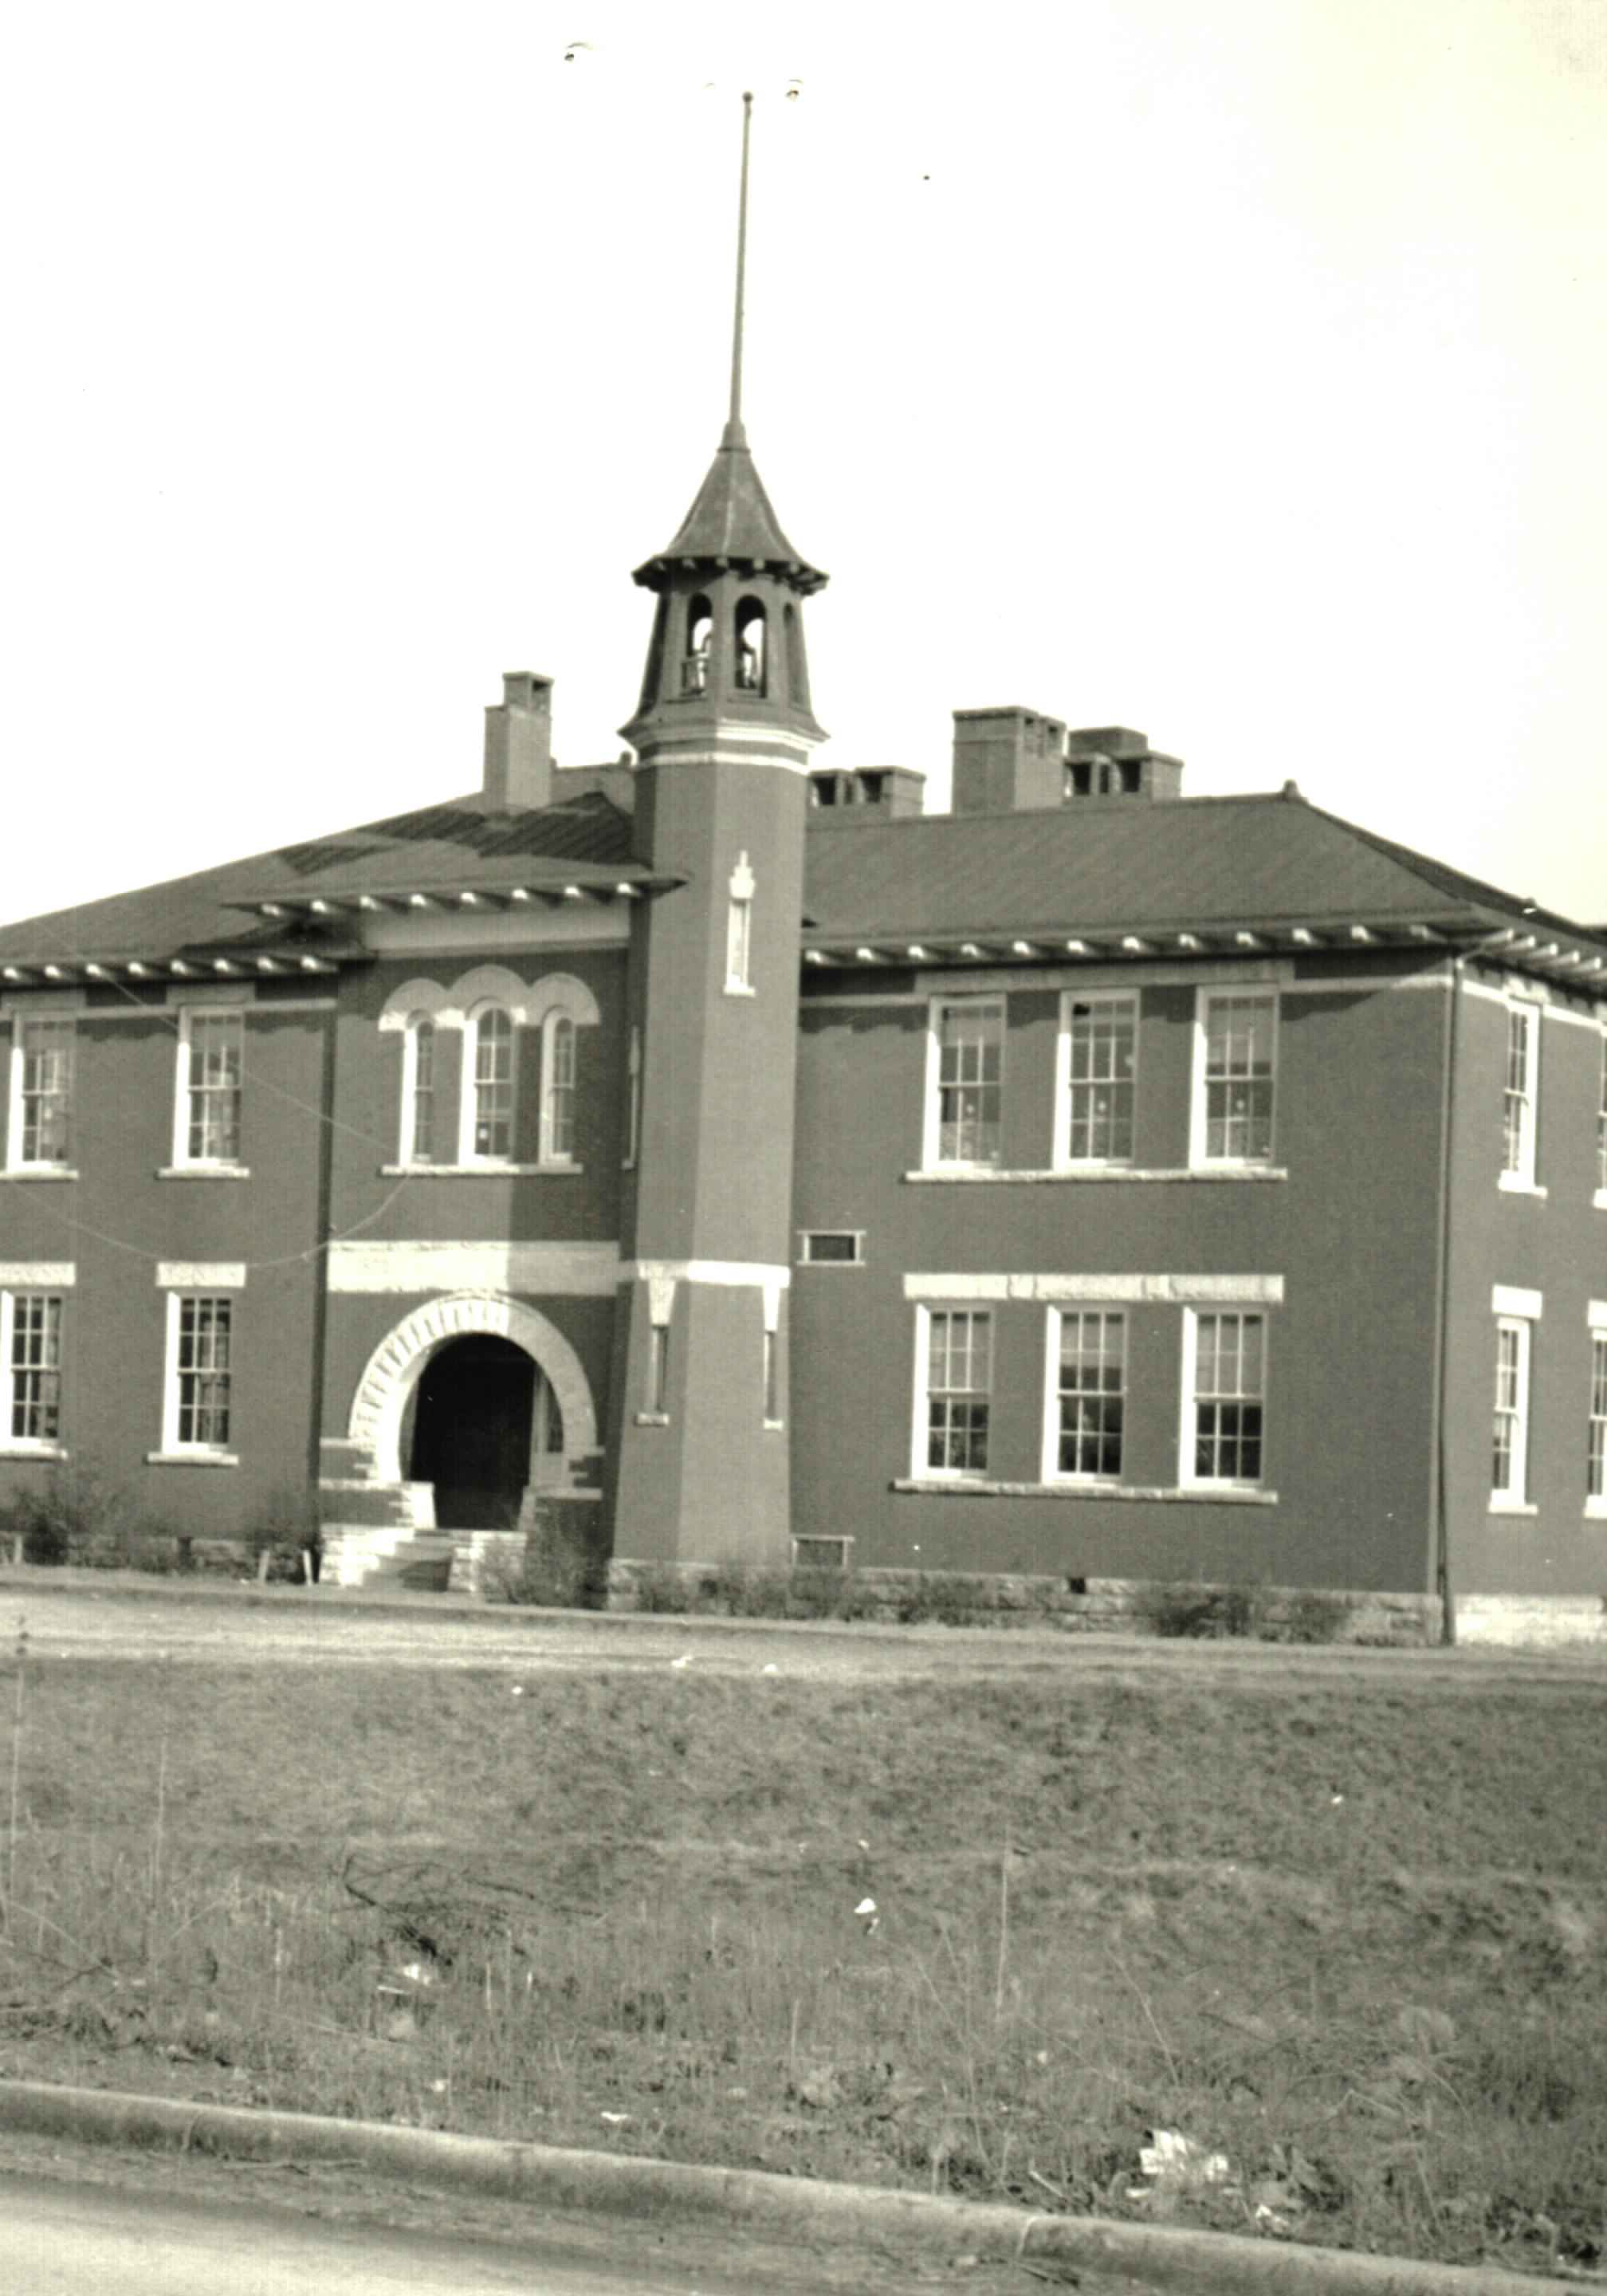 For the first almost thirty years of its existence, C-K High was located in the back rooms of the Ceredo Grade School on Main Street in Ceredo. The building burned down in 1957. Courtesy of the Ceredo Historical Society Museum